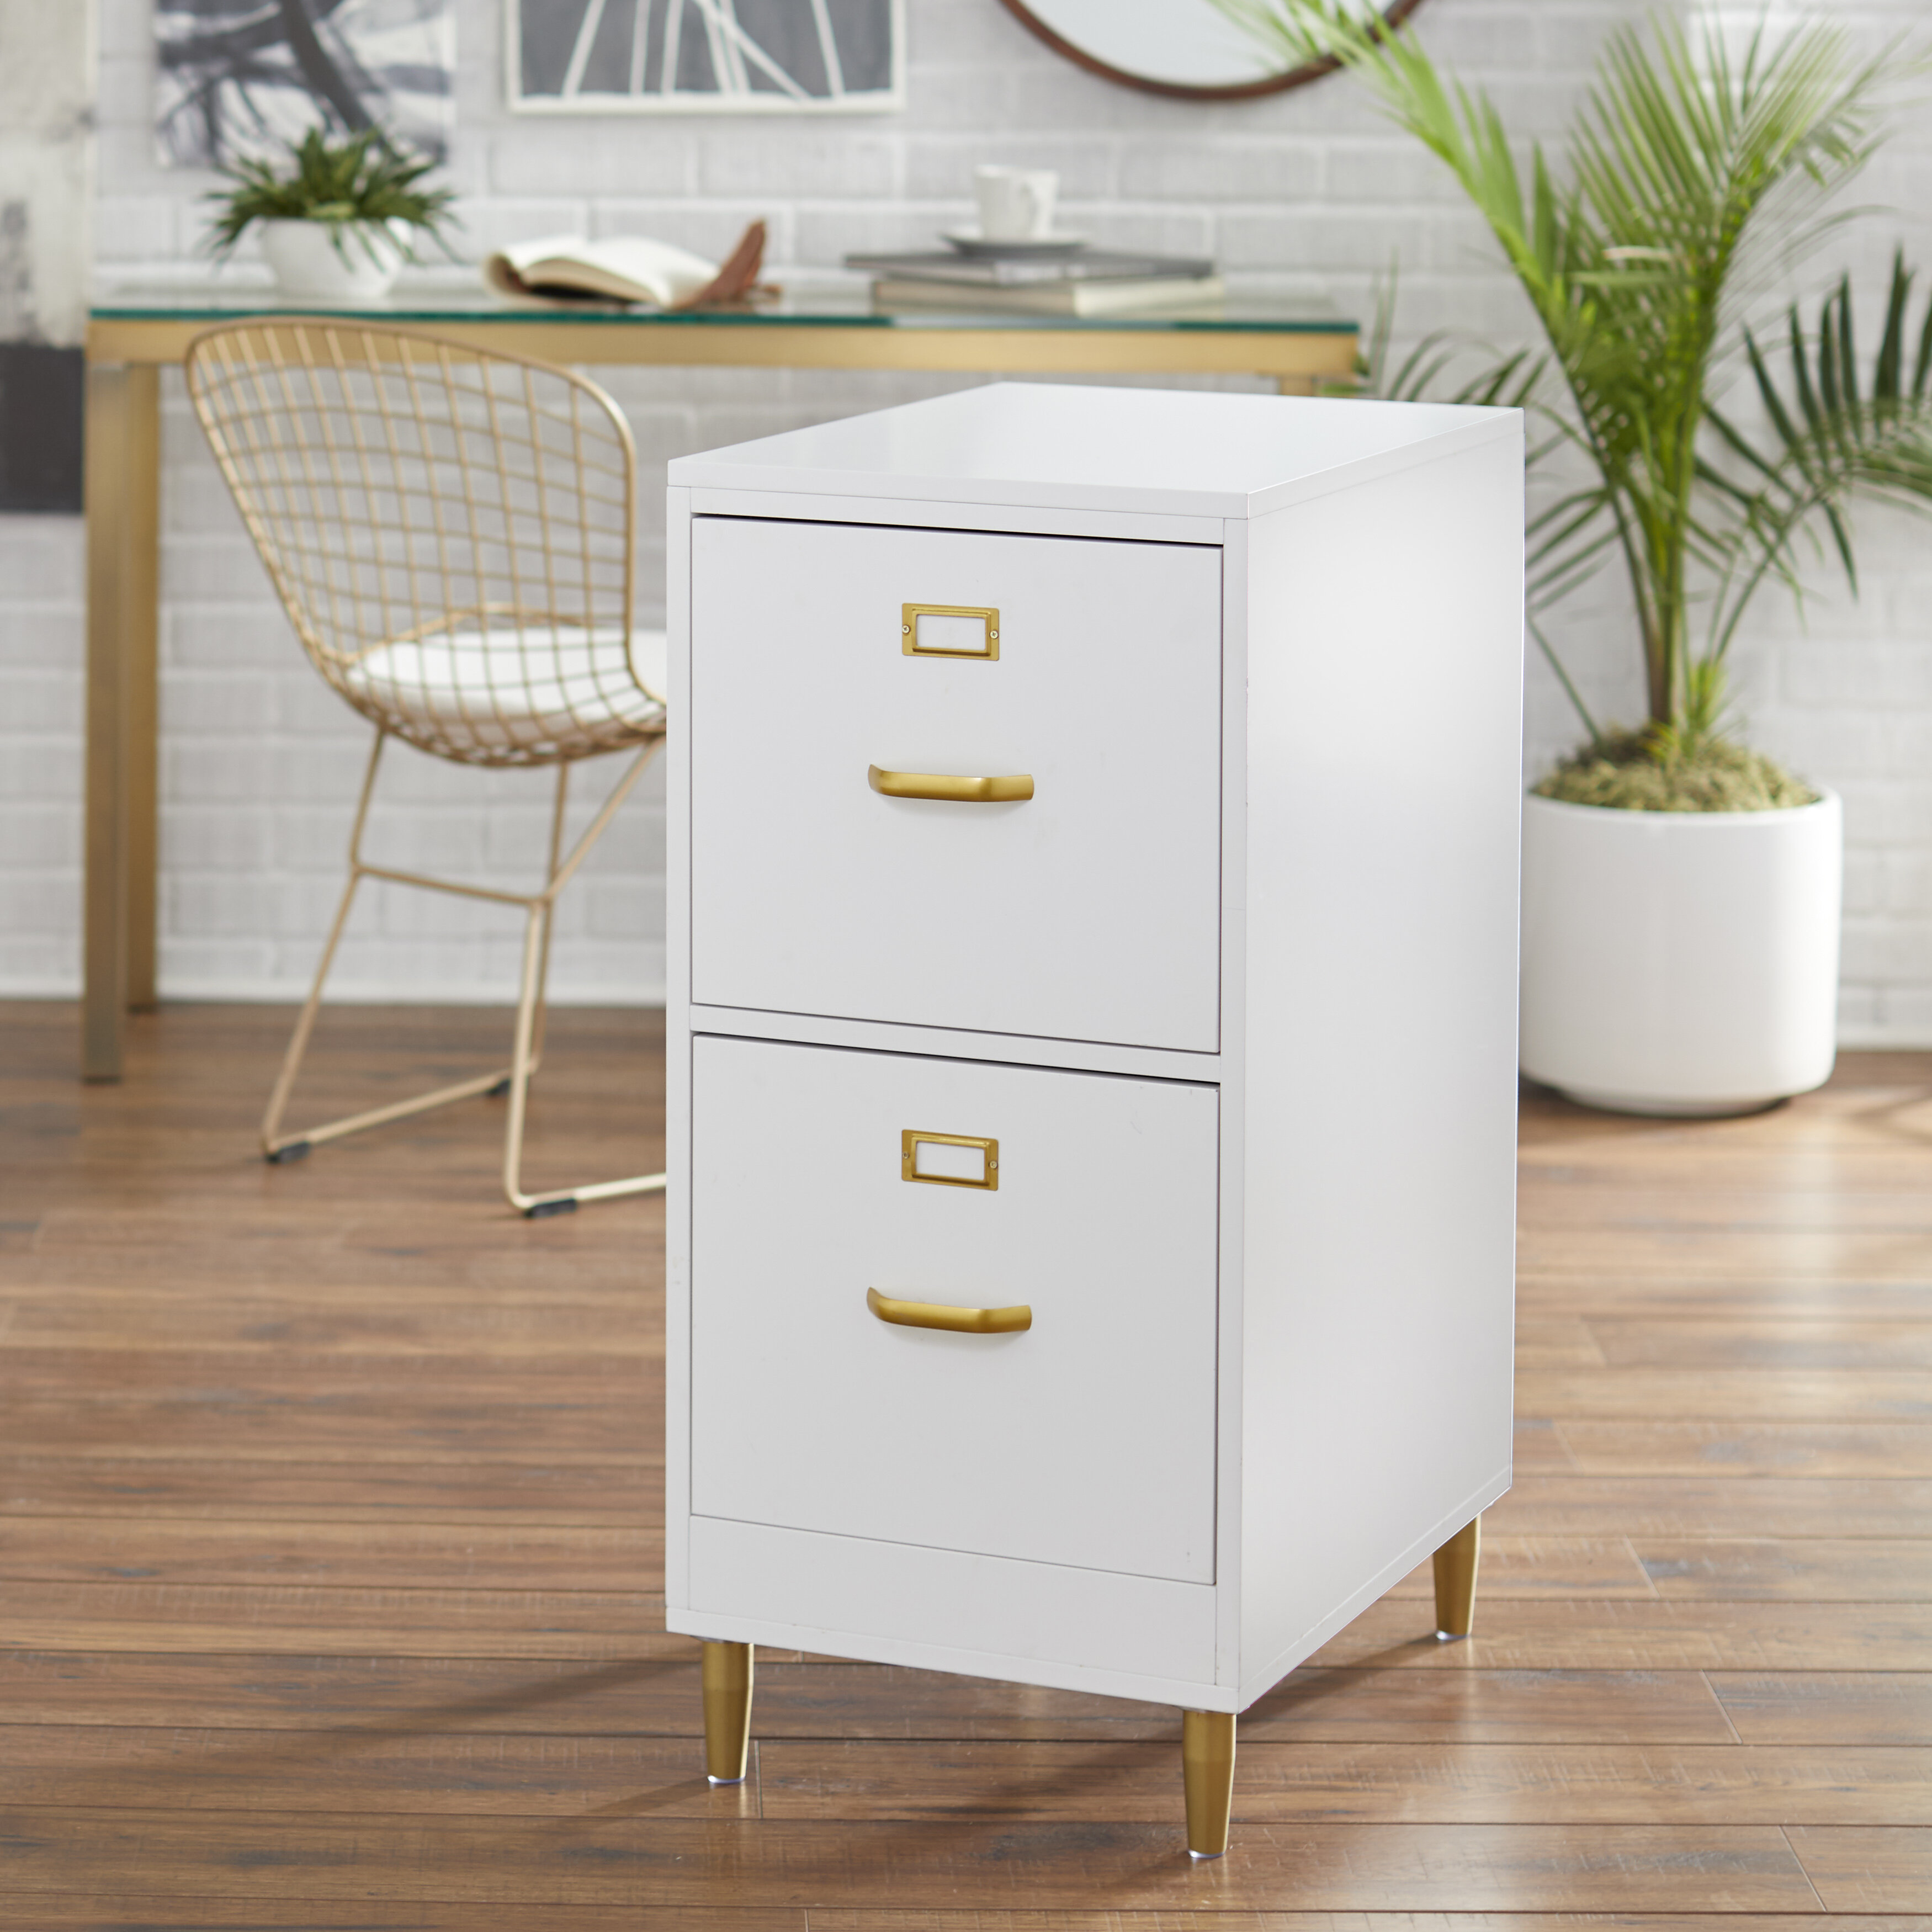 2 Draw Filing Cabinet 2 Available